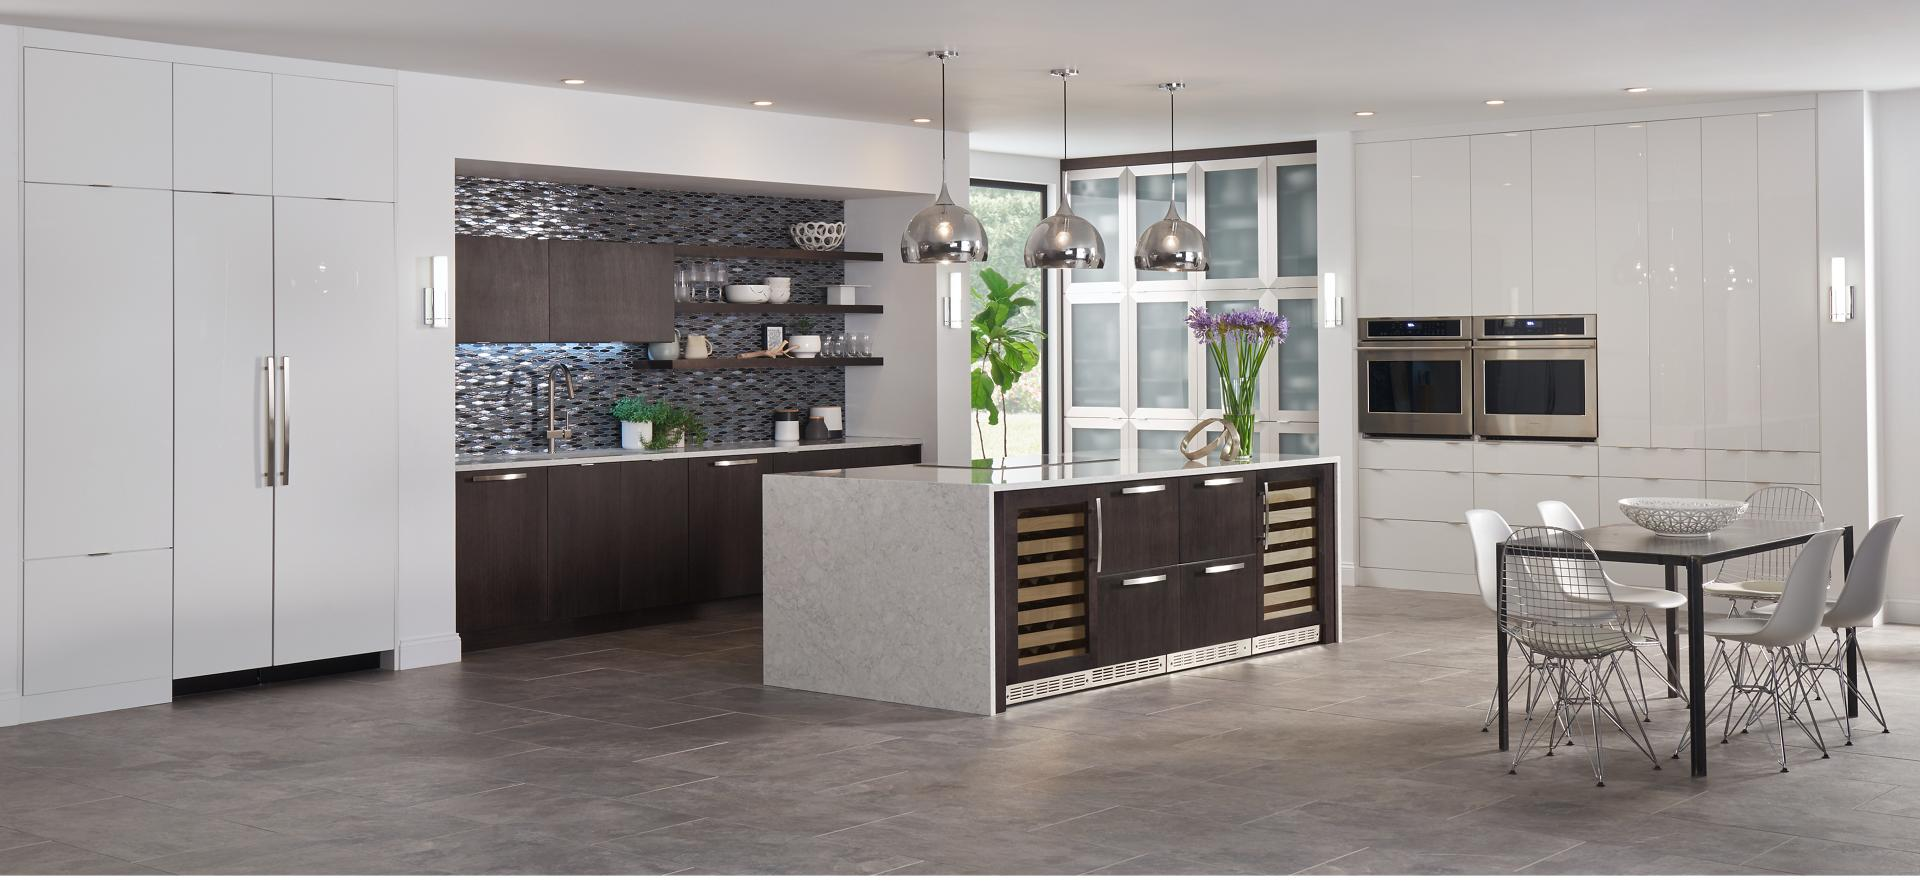 Jackie's Kitchen & Bath Design   We design thoughtful, livable spaces.   View Our Work